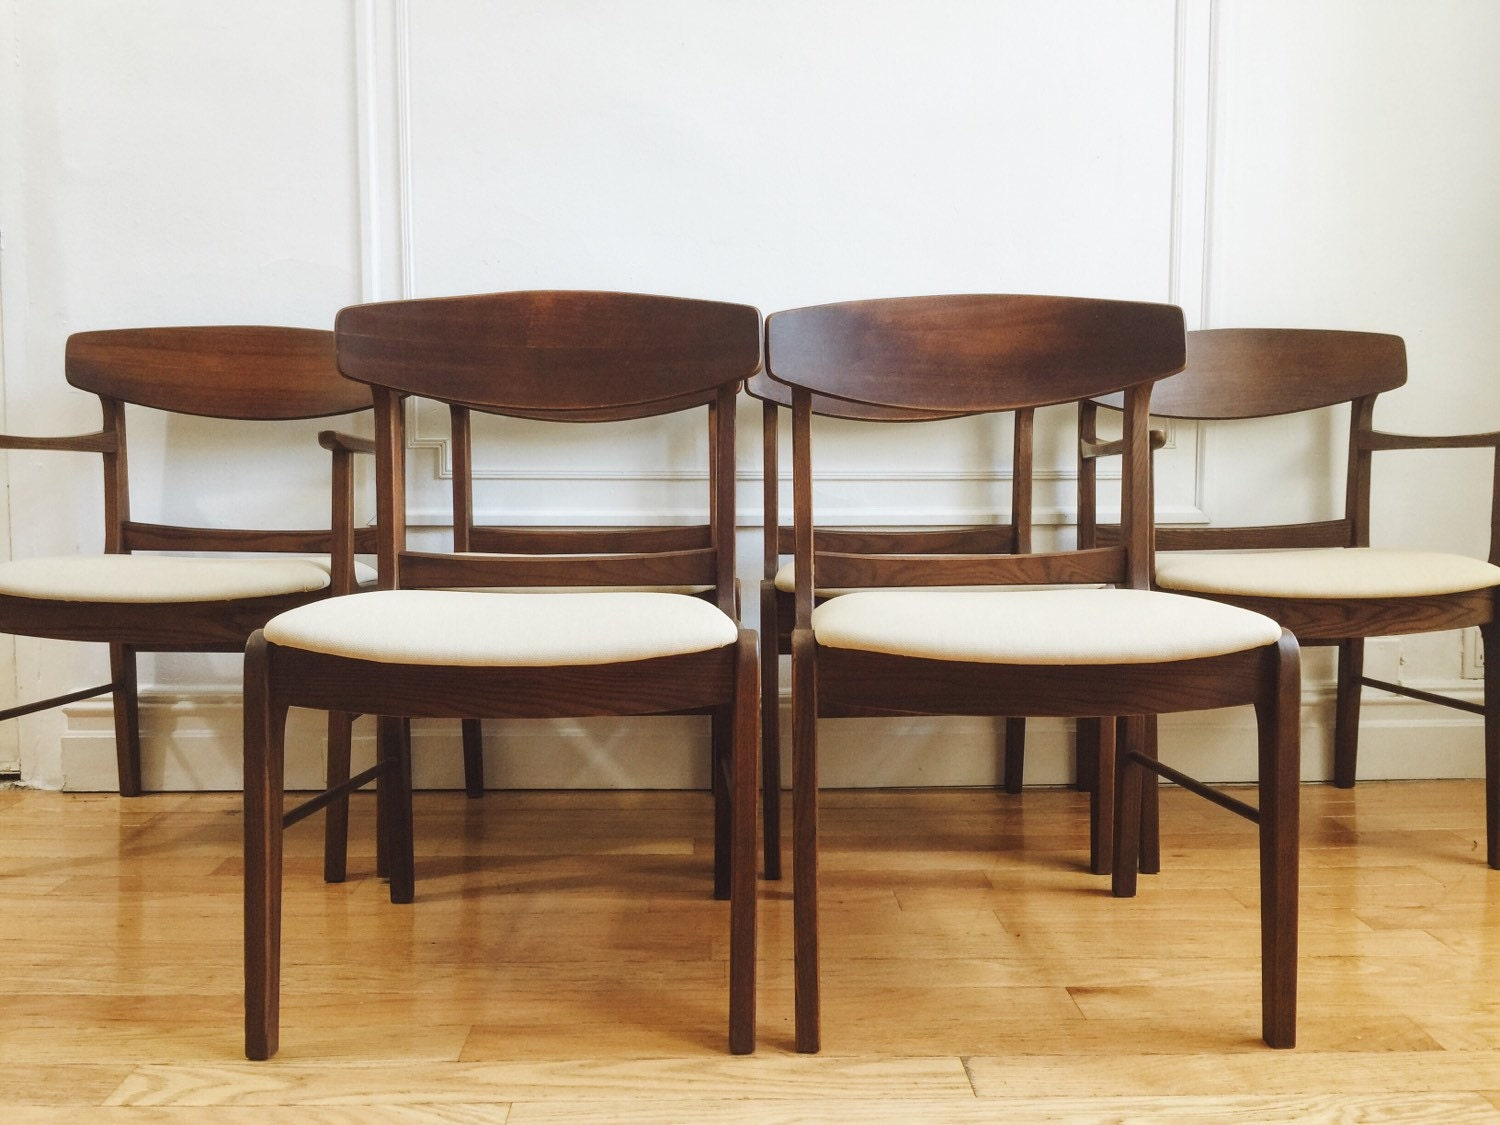 SET OF 6 Stanley MCM Dining Chairs